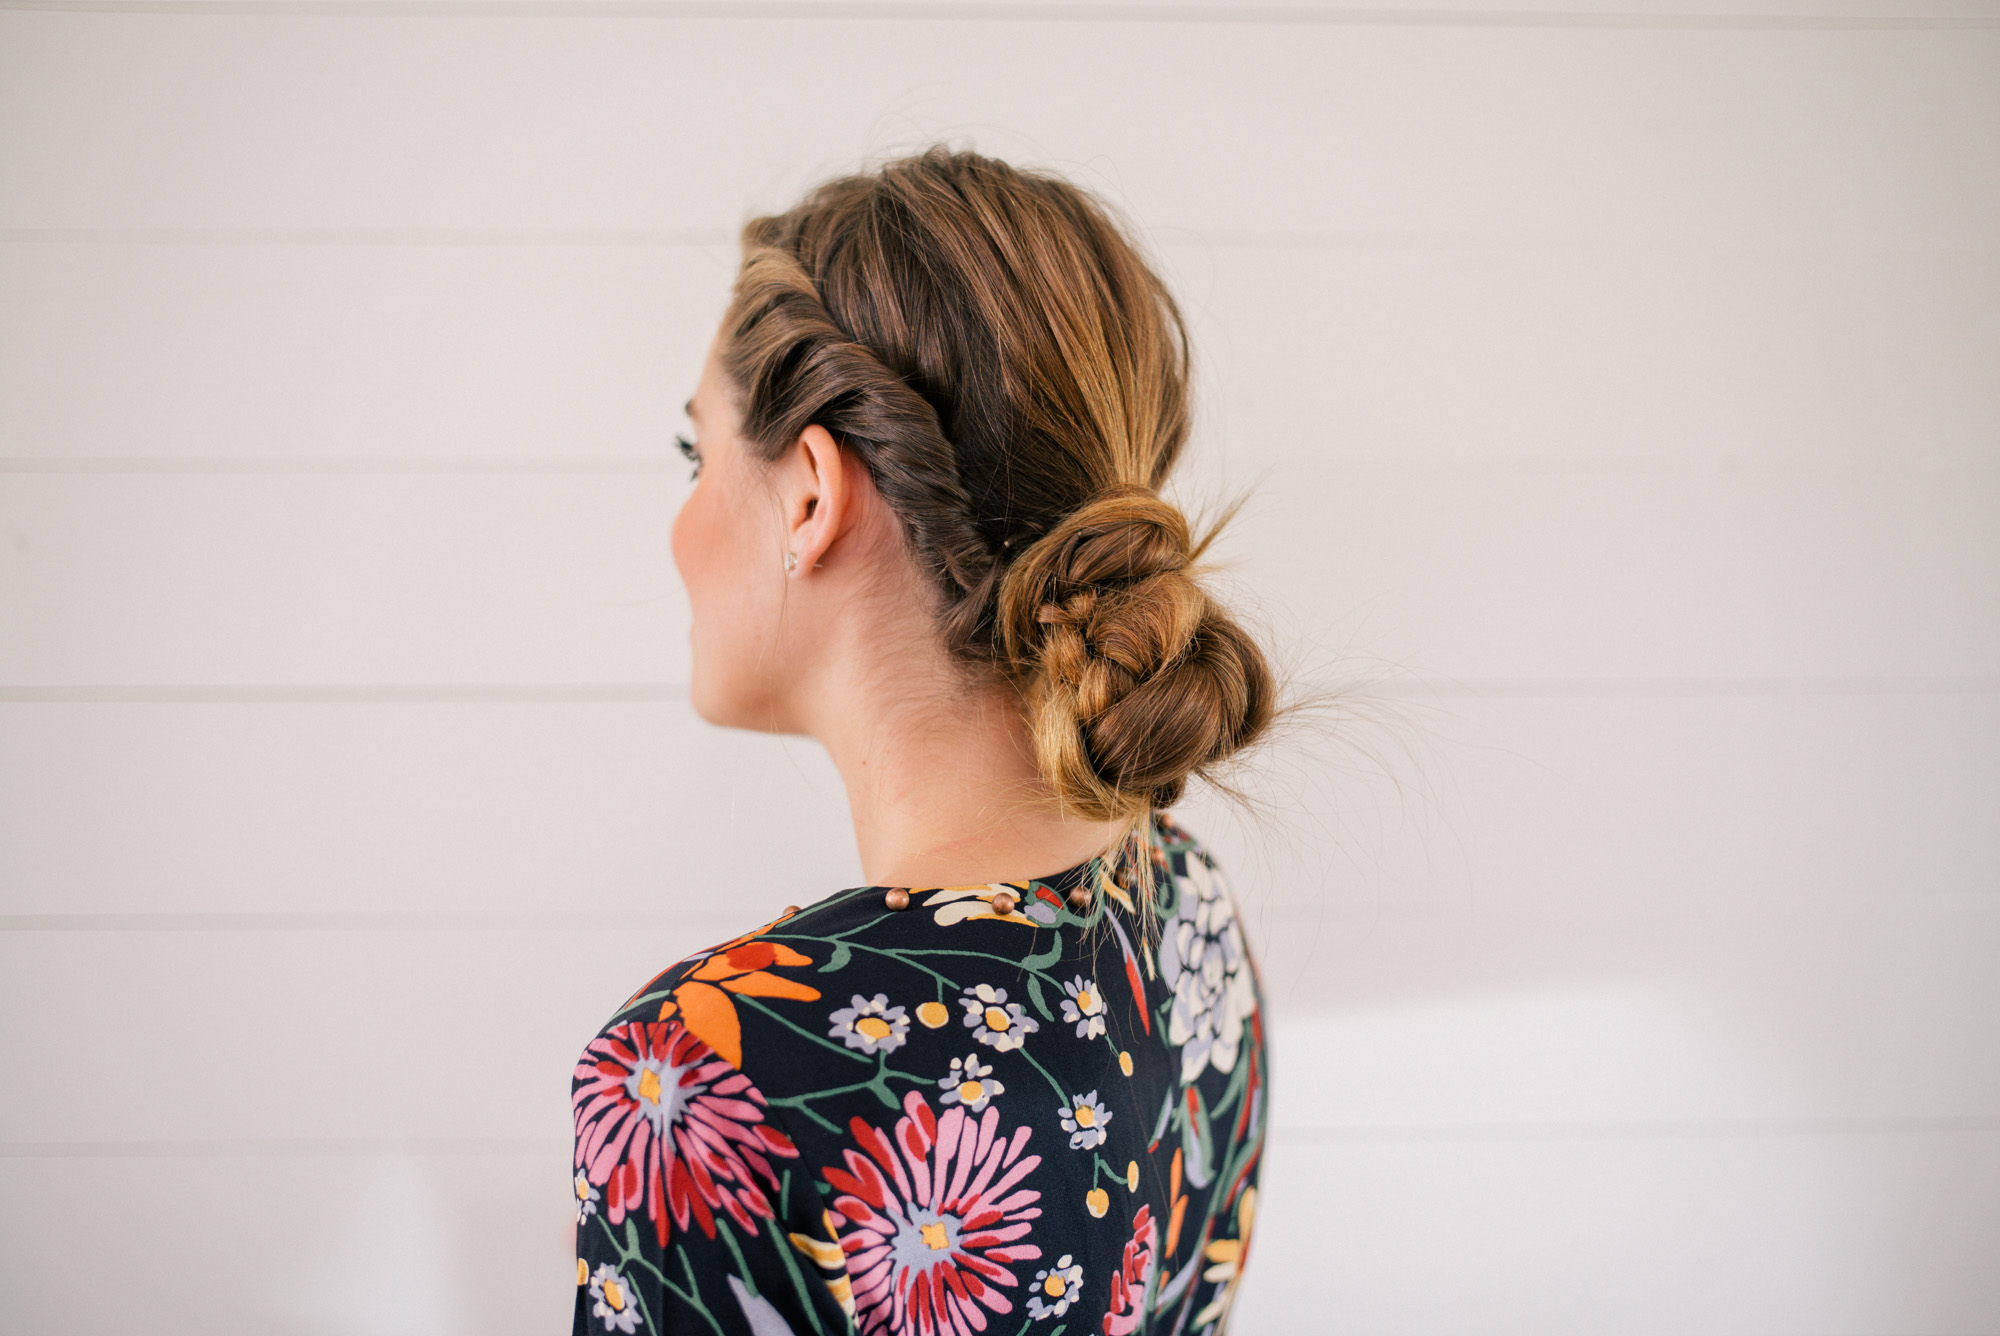 6 simple holiday hairstyles - with the party-ready hair tutorials - that are sure to WOW at your next event this holiday season. | glitterinc.com | @glitterinc - Twisted Knot Hair Tutorial - 6 Simple Holiday Hairstyles That Are Sure to Wow by North Carolina style blogger Glitter, Inc